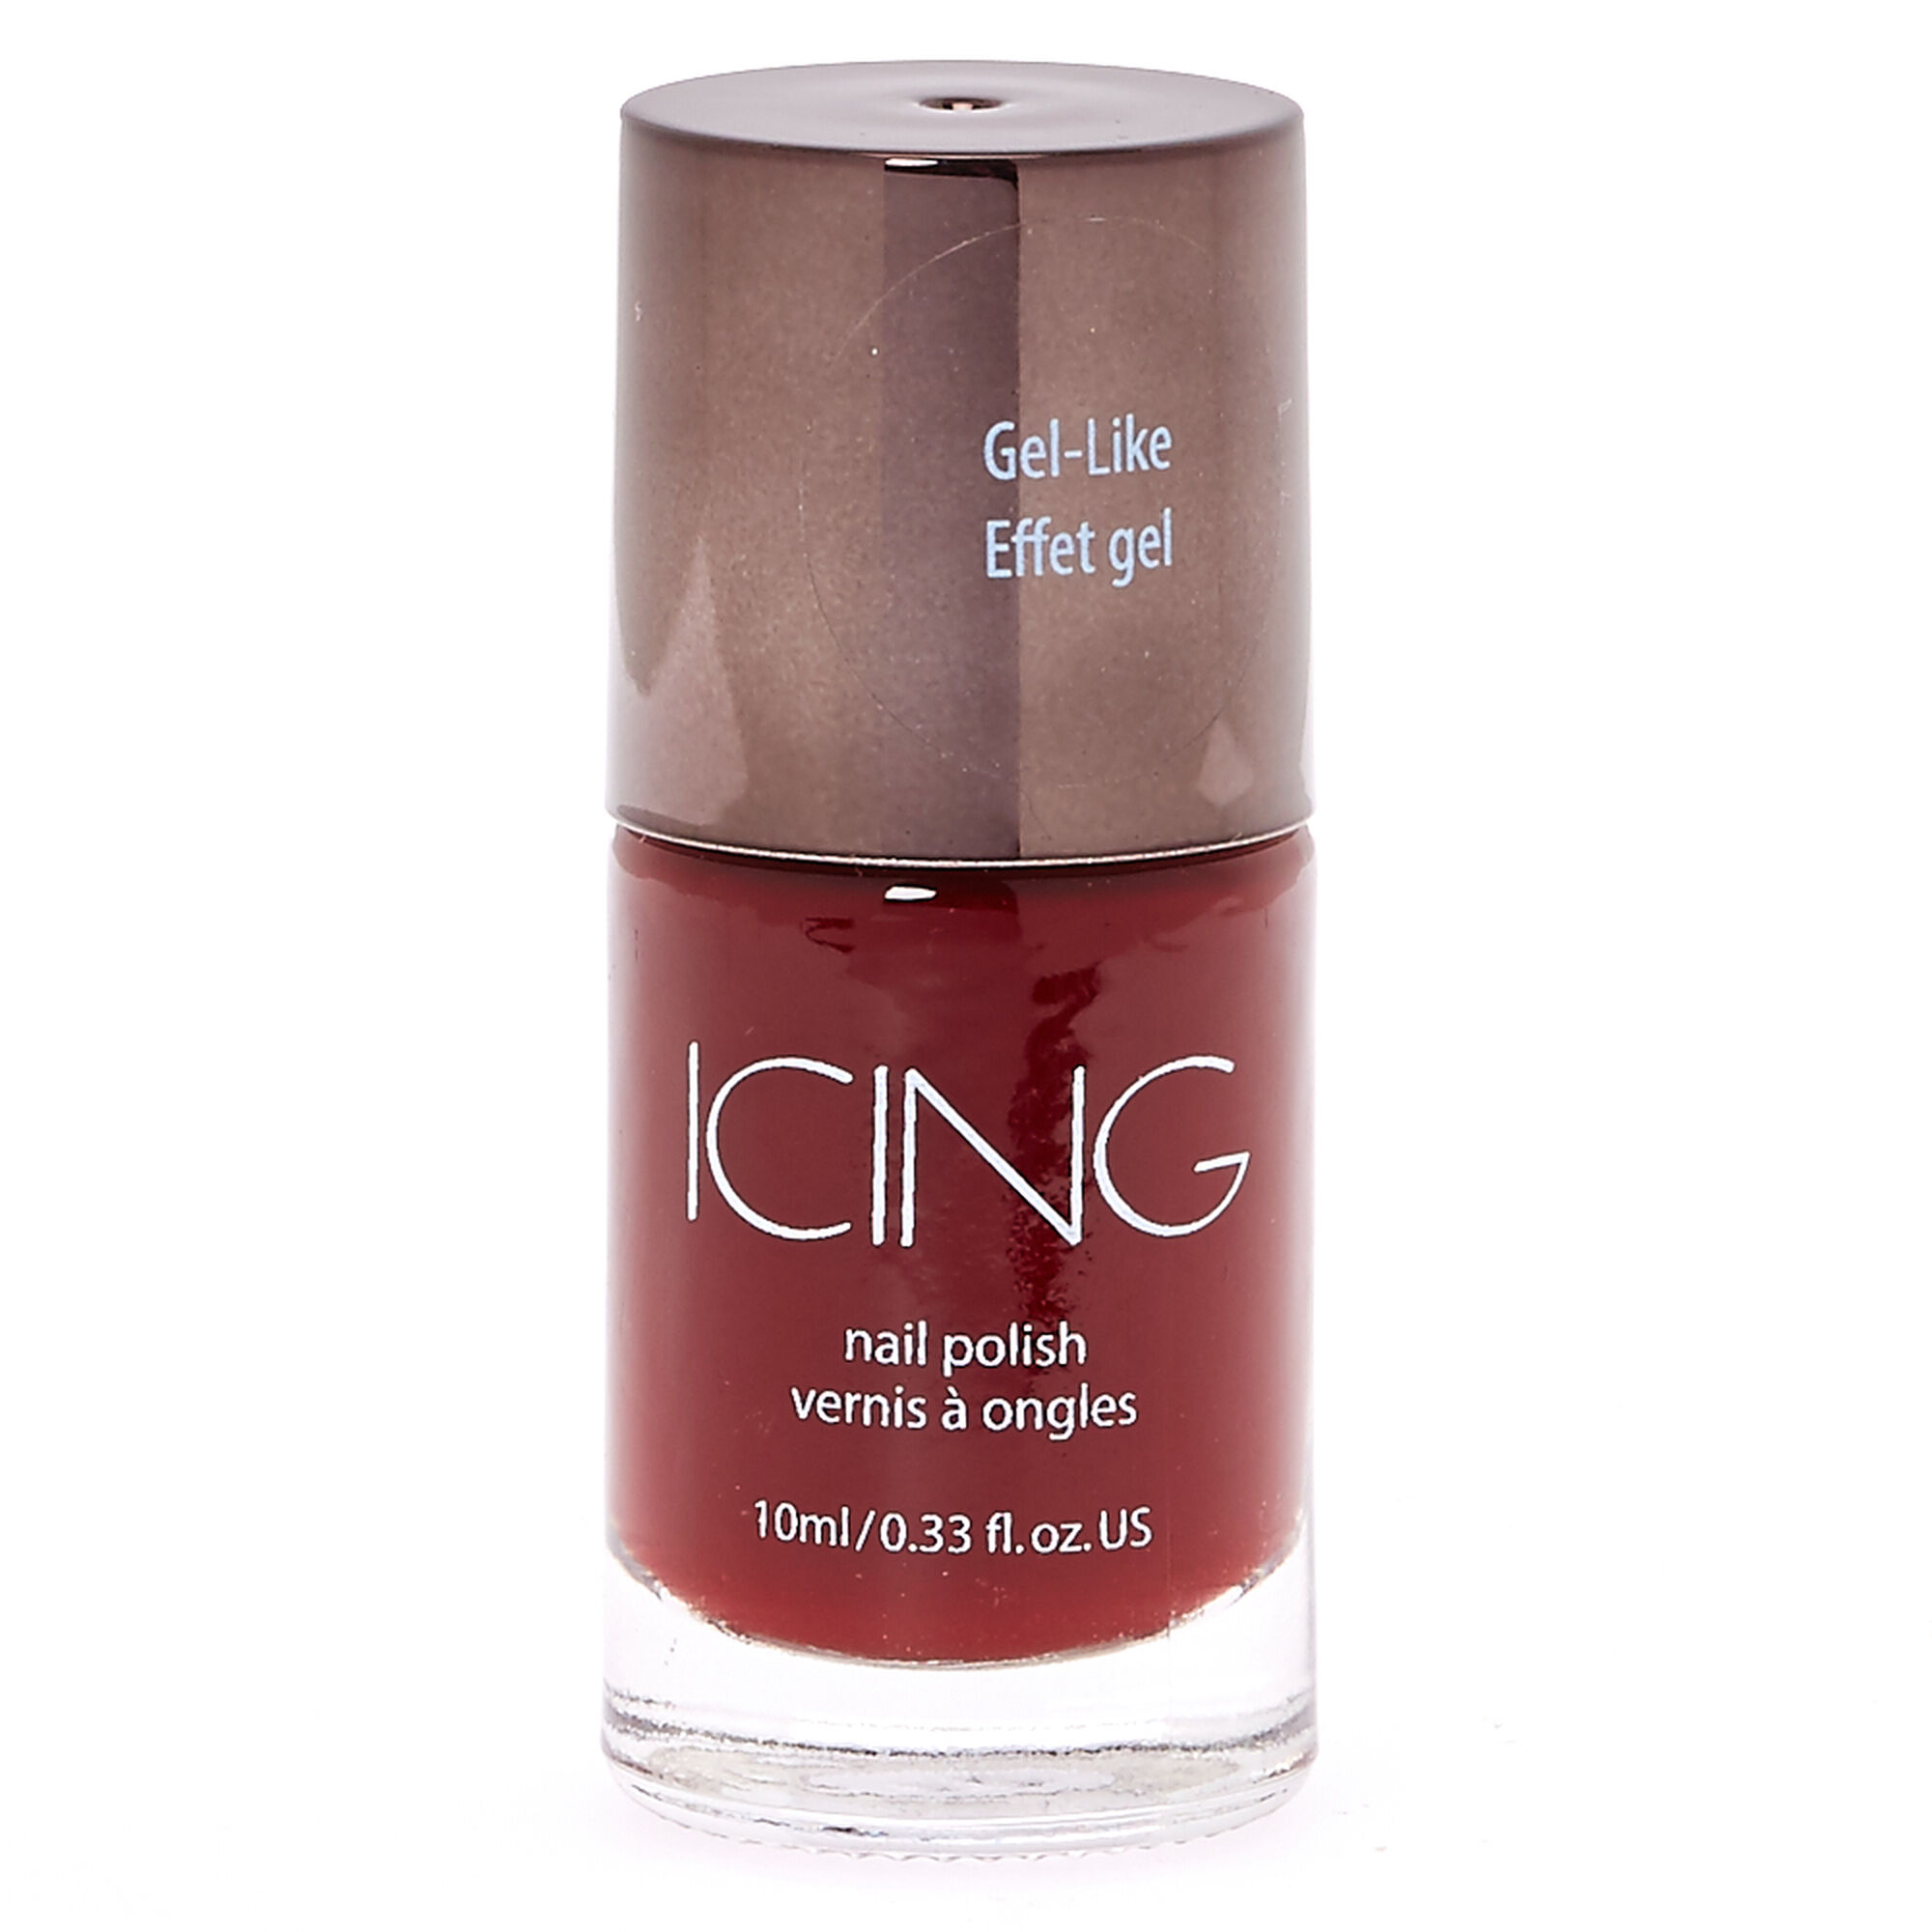 Gel Like Merlot Nail Polish